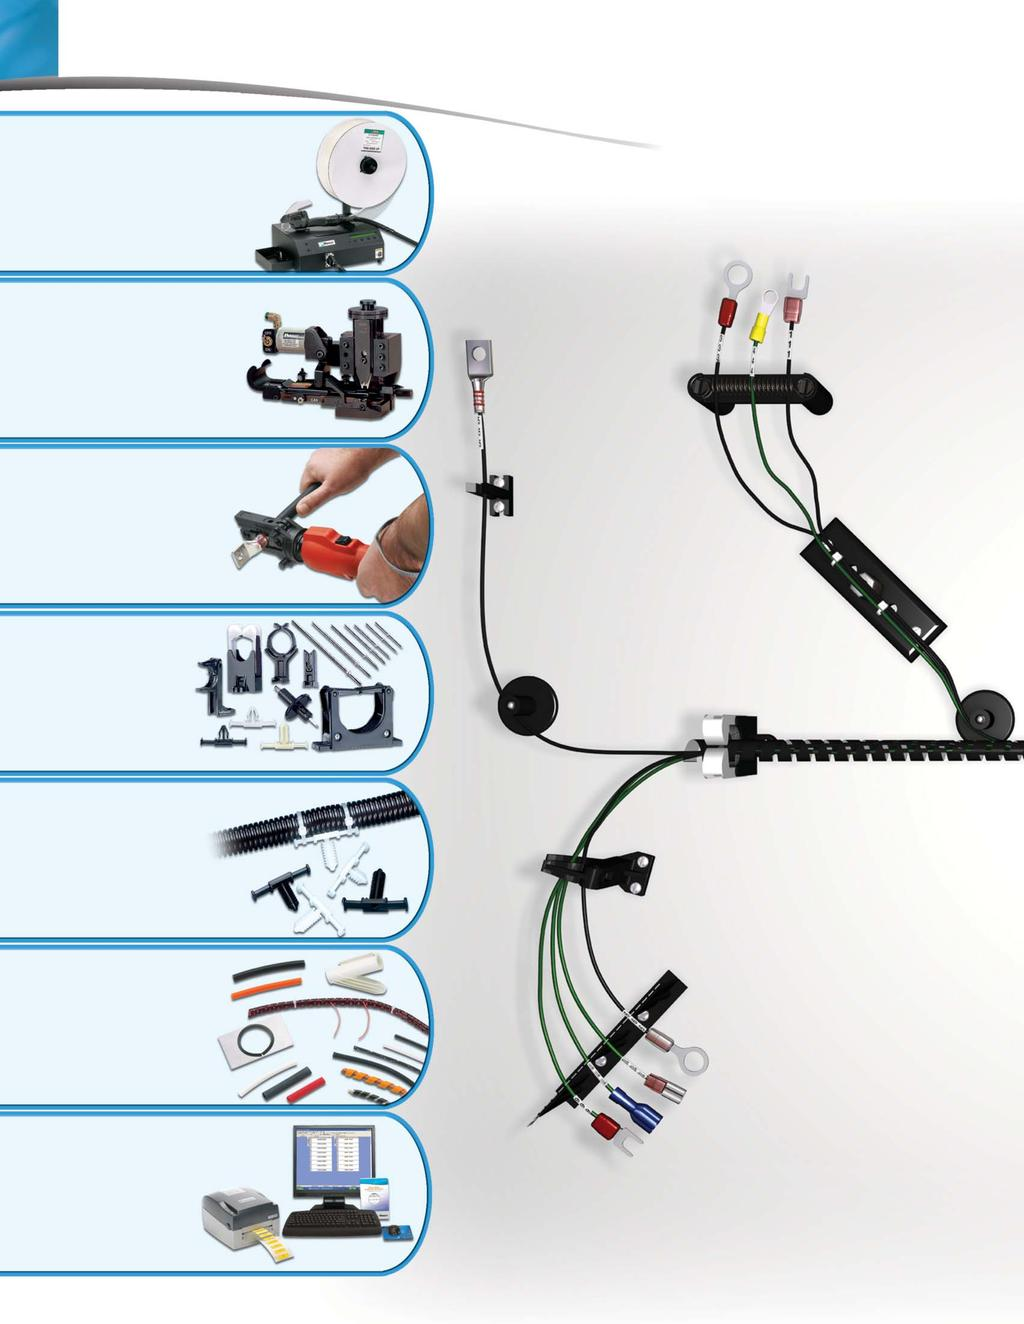 Innovative Wire Management Systems For Harness Fabrication Aerospace Ties Roadmap 1 Cable Pages 6 9 2 Terminals 10 12 3